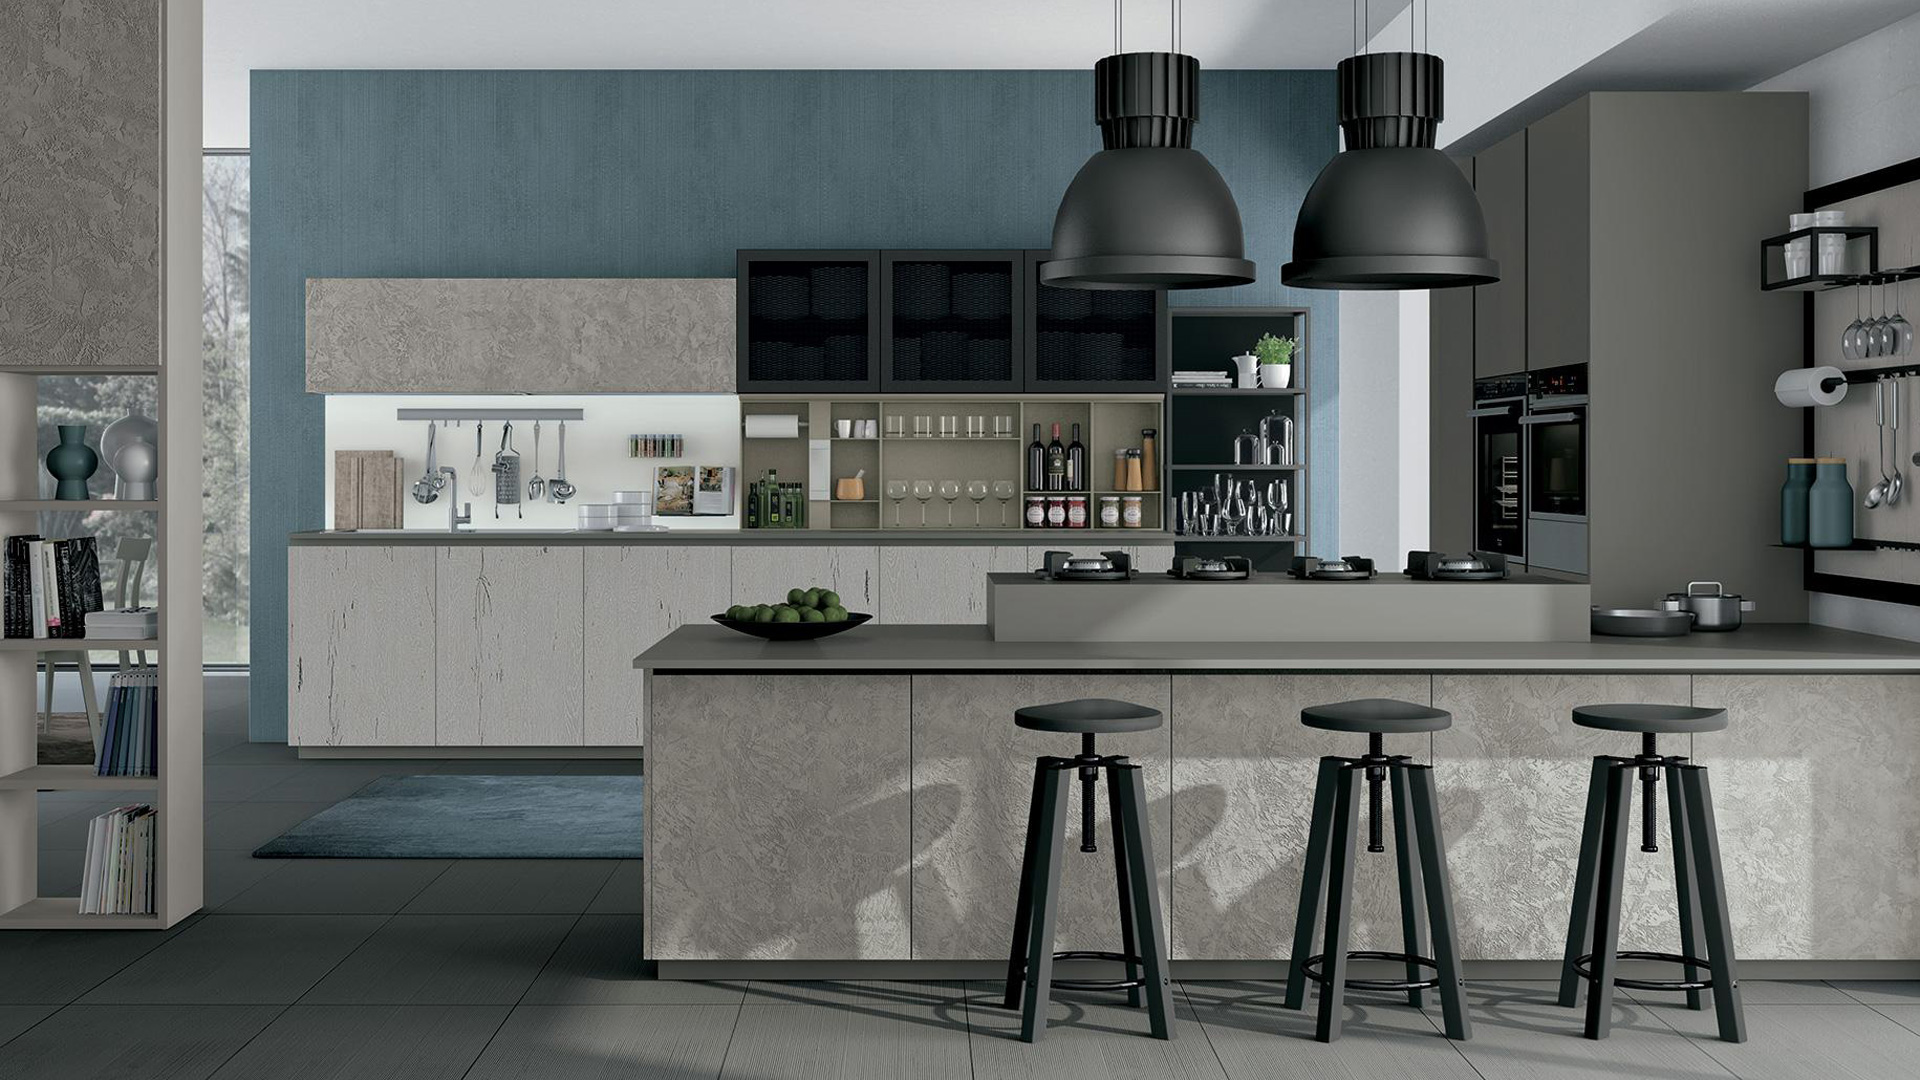 Lube cucine moderne oltre shop online su grancasa for Cucine on line outlet